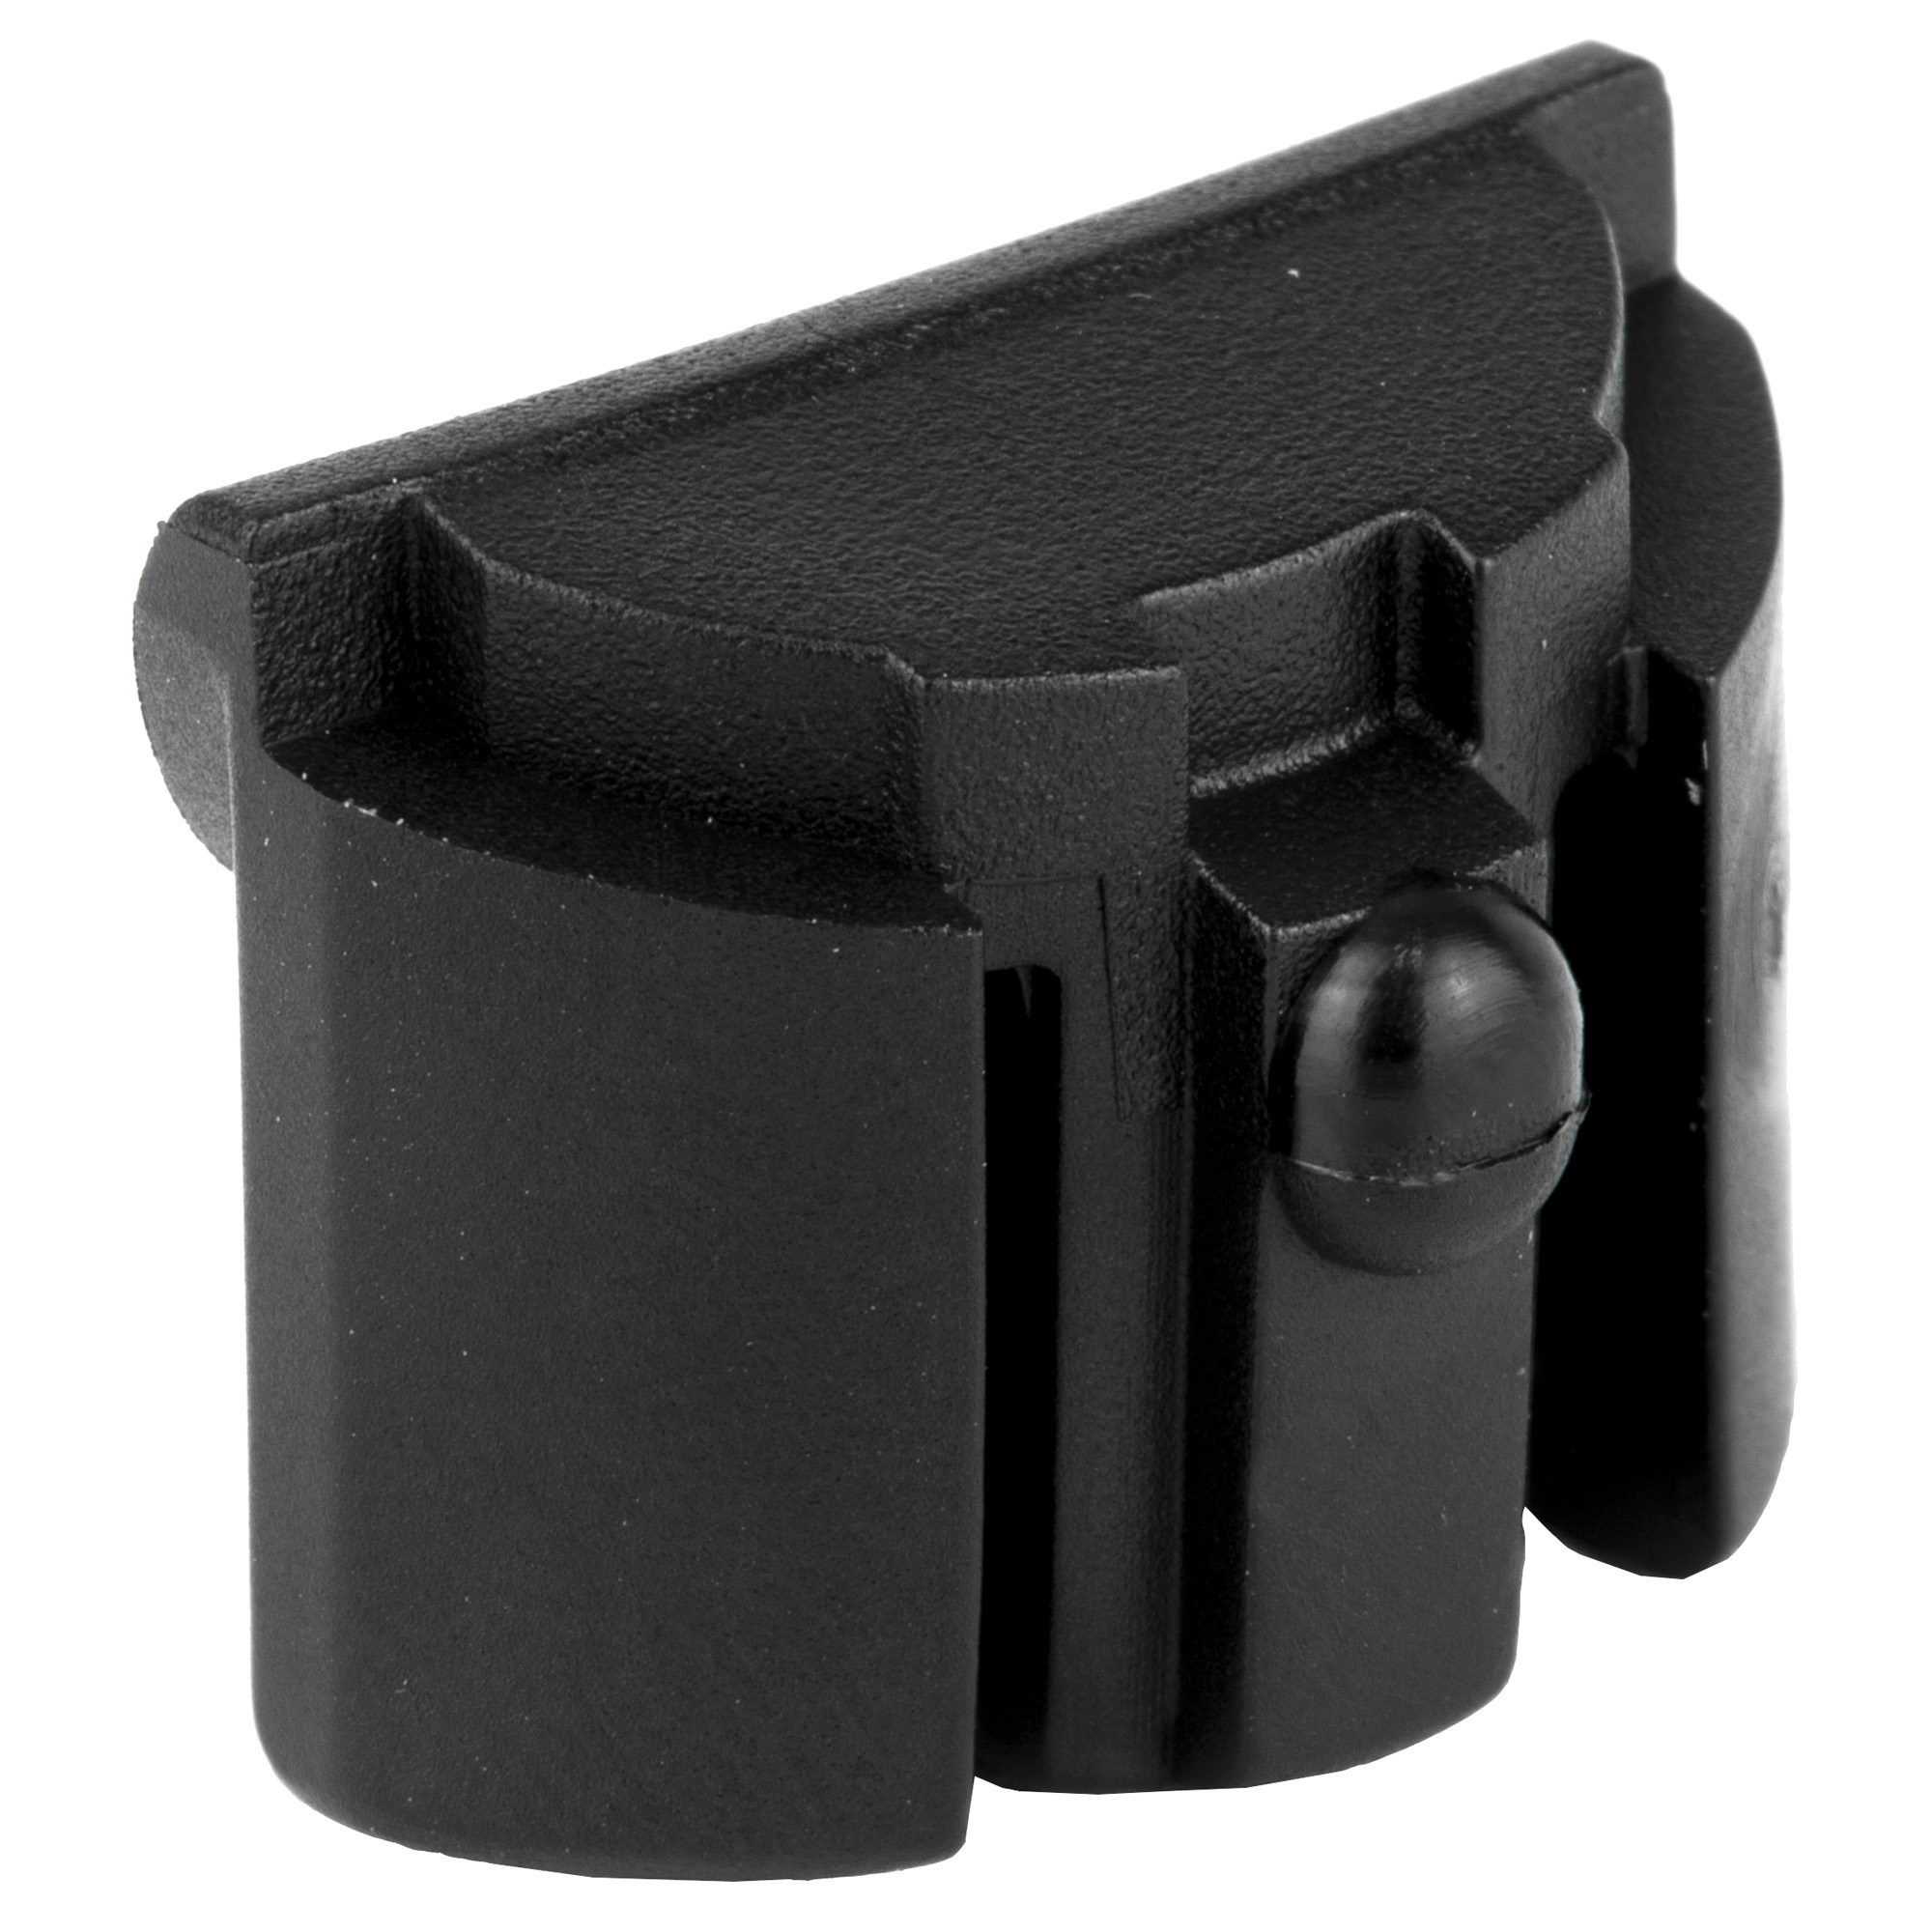 """This unit installs in the bottom rear cavity of the frame utilizing the lanyard hole for retention. Fits model M20"""" 21"""" 40 and 41. This product will only fit Generation 4 frames. Made of a high impact polymer"""" this insert is designed to keep out dust and debris as well as finish off the overall look of the frame. For use with or without the factory interchangeable backstraps."""